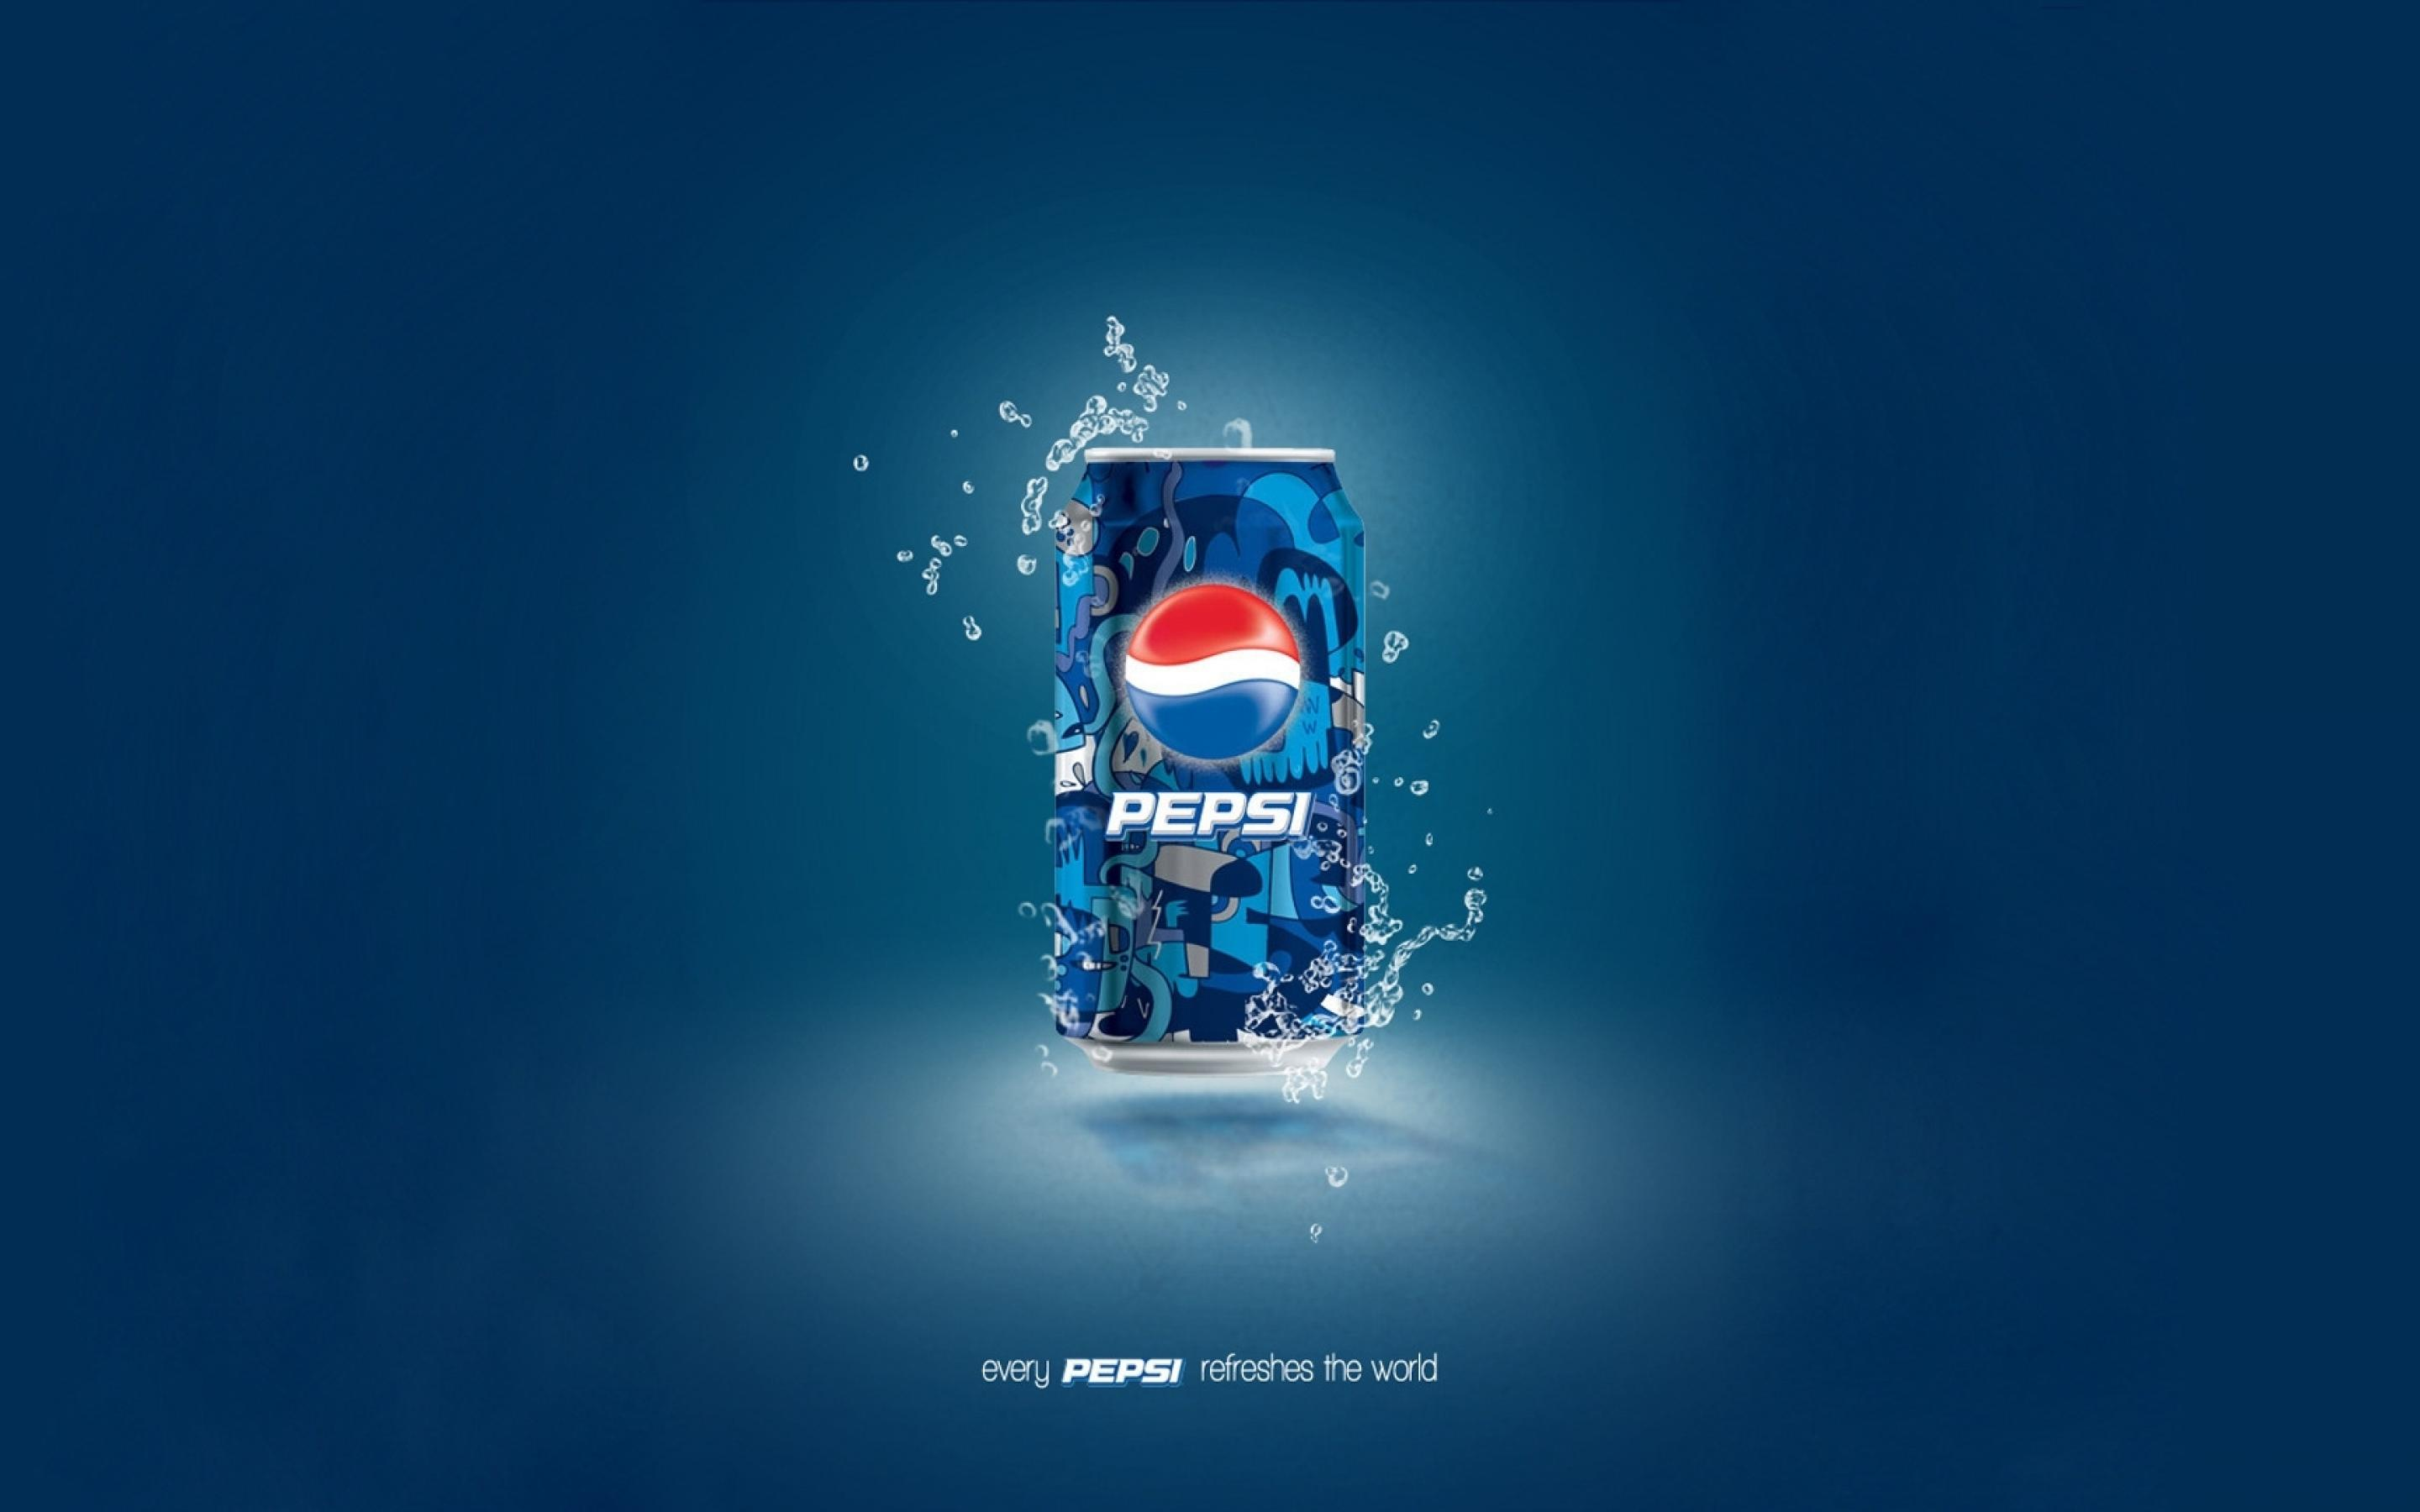 Please check our latest widescreen hd wallpaper below and bring beauty to your desktop. Pepsi HD Wallpapers